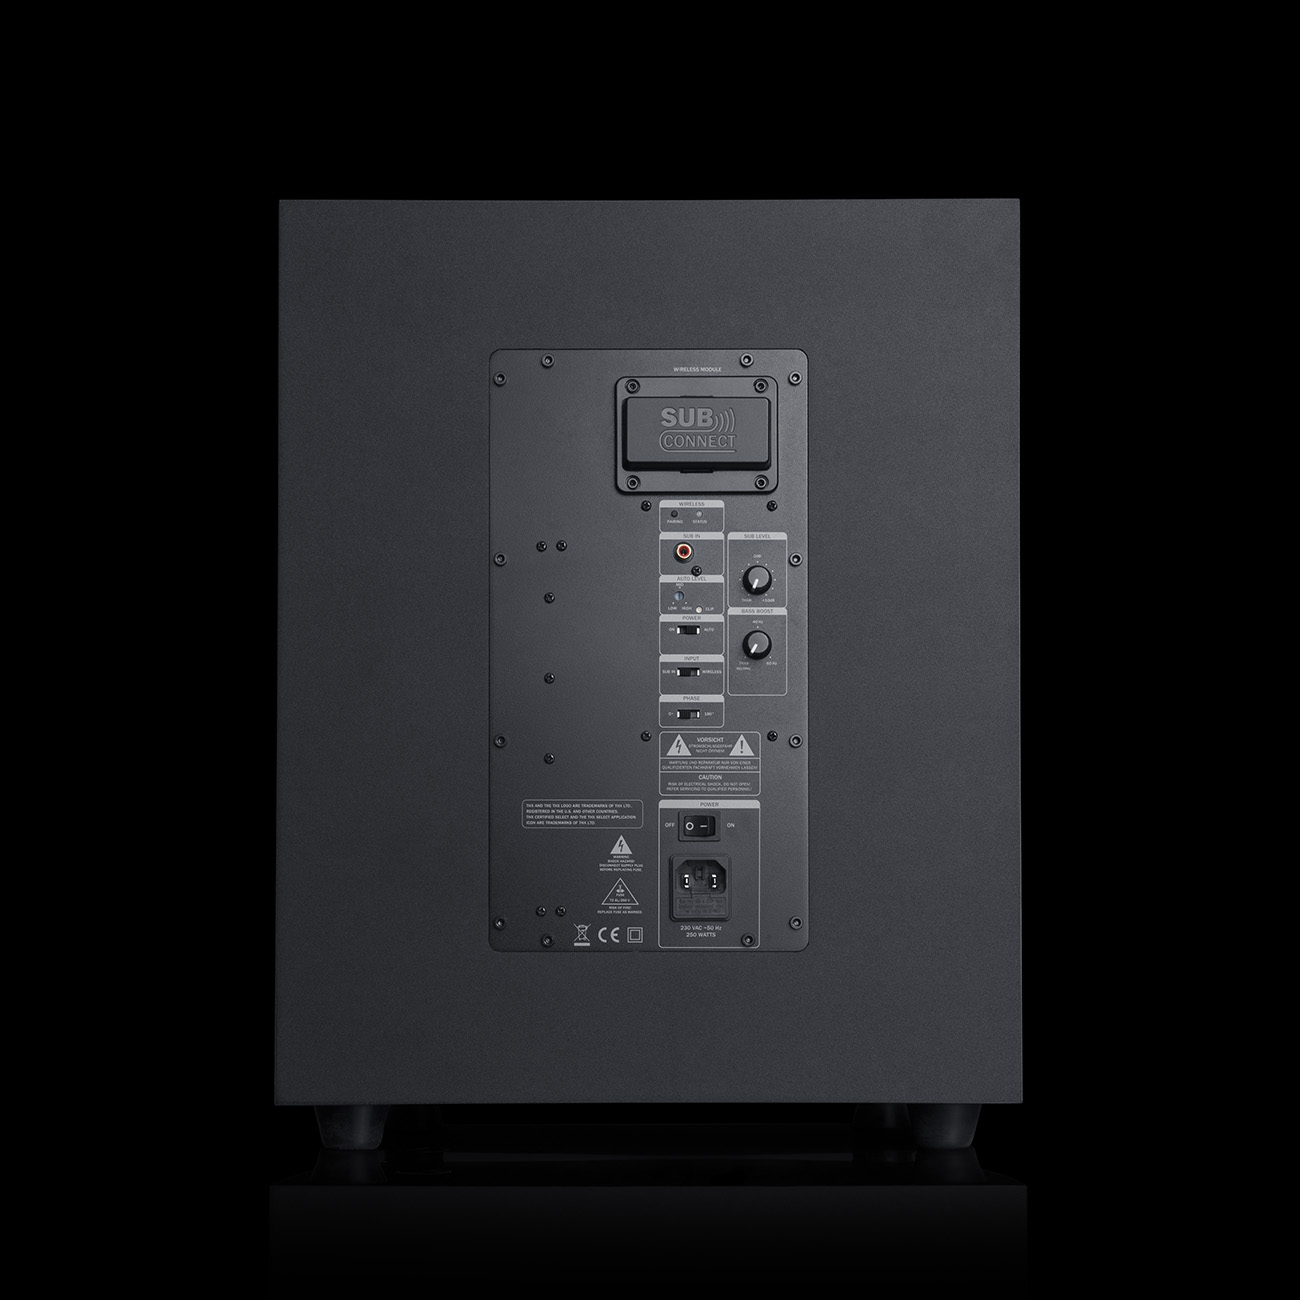 system-6-thx-select-sub-back-straight-black-cover-on-black-1300x1300x72.jpg